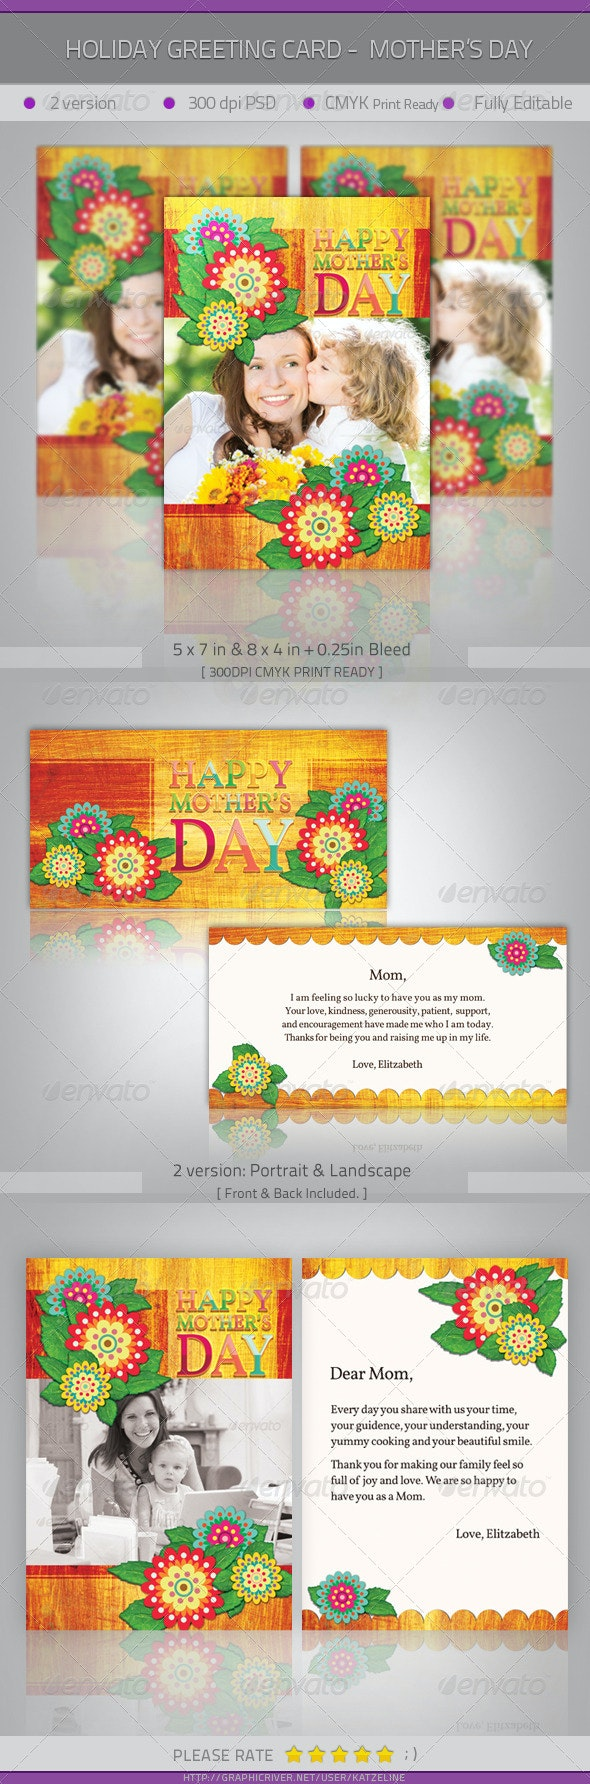 Mother's Day Greeting Card - Flowers - Holiday Greeting Cards